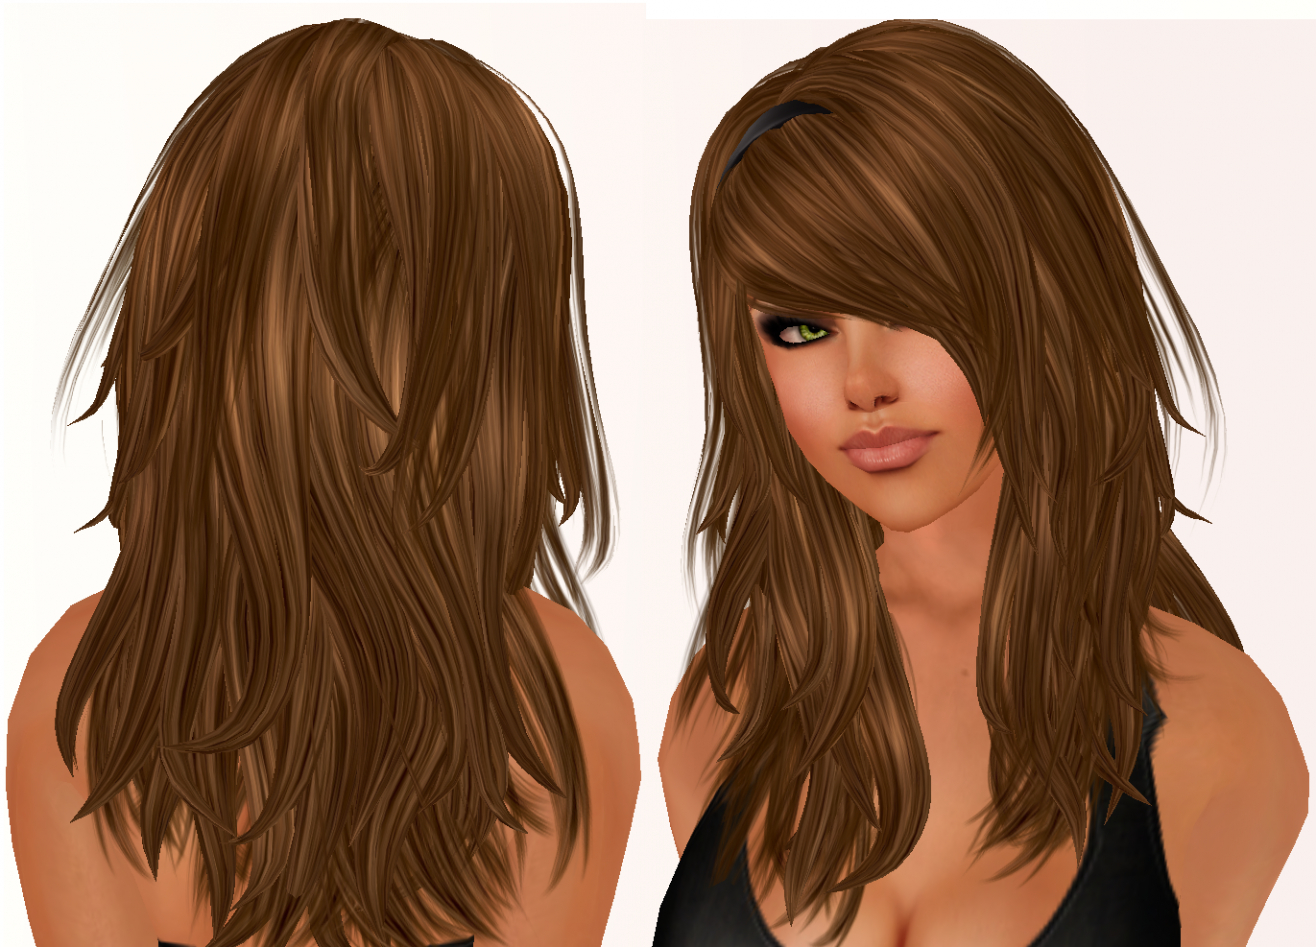 Cute Hairstyles For Medium Hair With Side Bangs And Layers Inside Most Popular Layered Medium Hairstyles With Side Bangs (View 6 of 20)